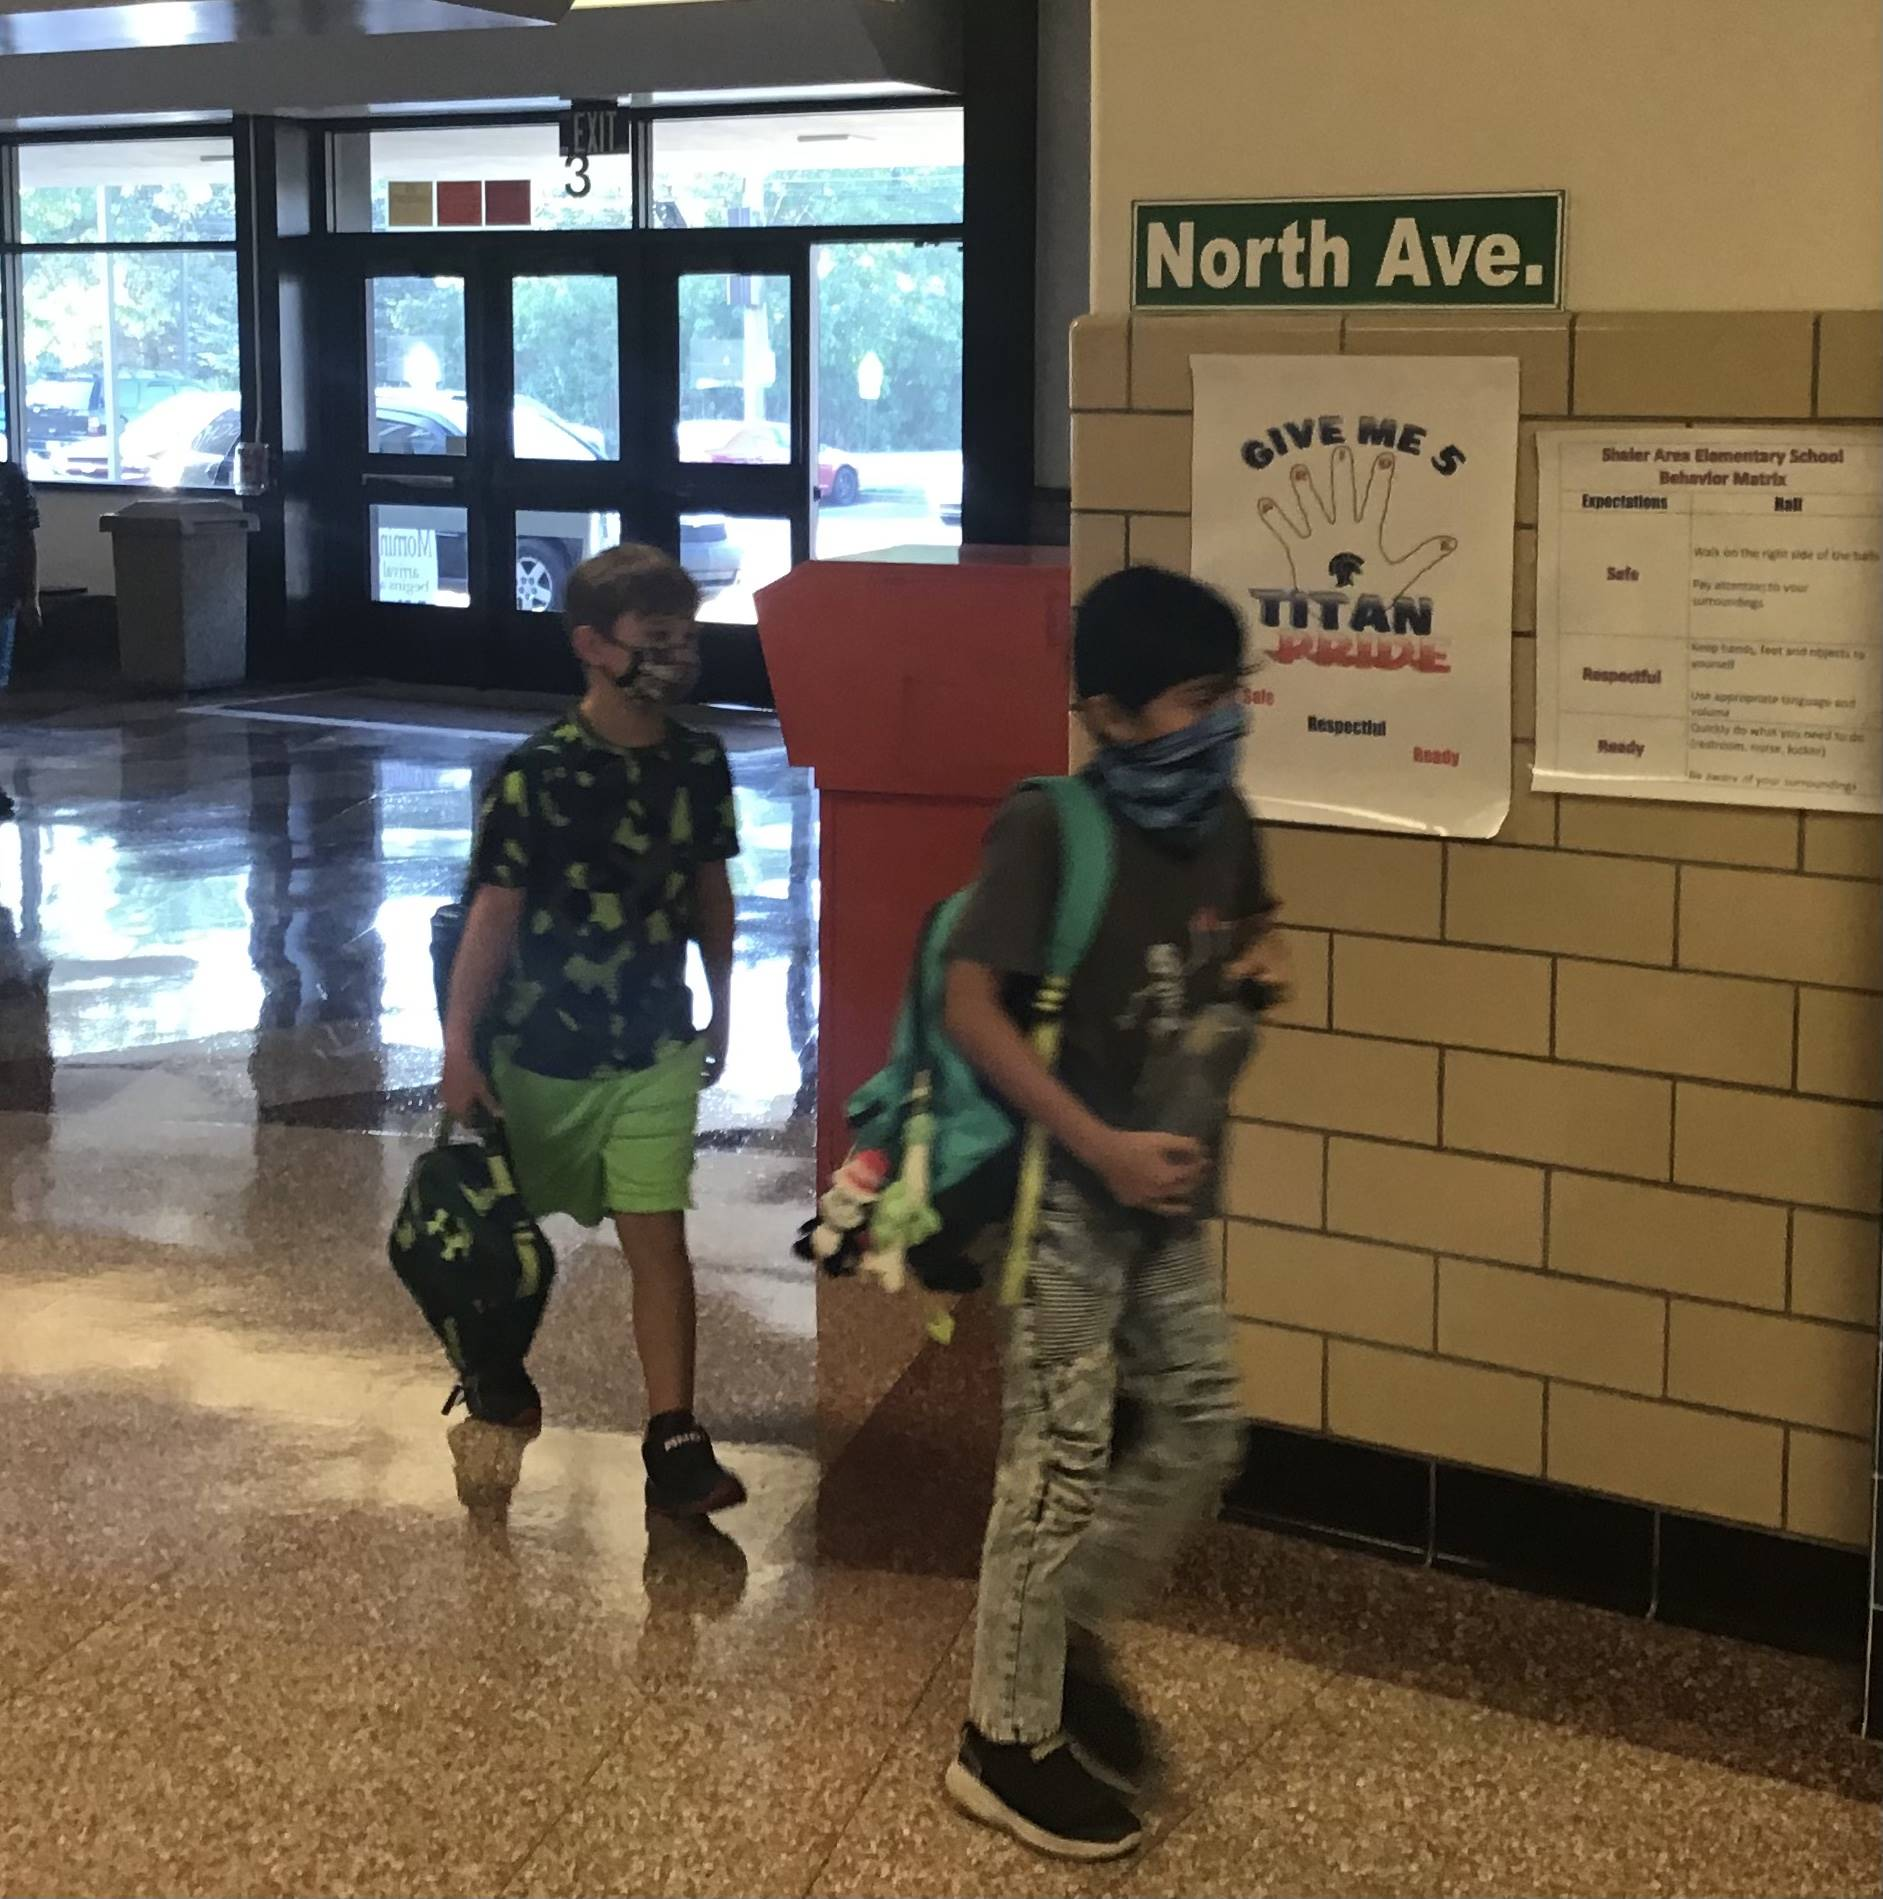 Students entering the school on the first day of school